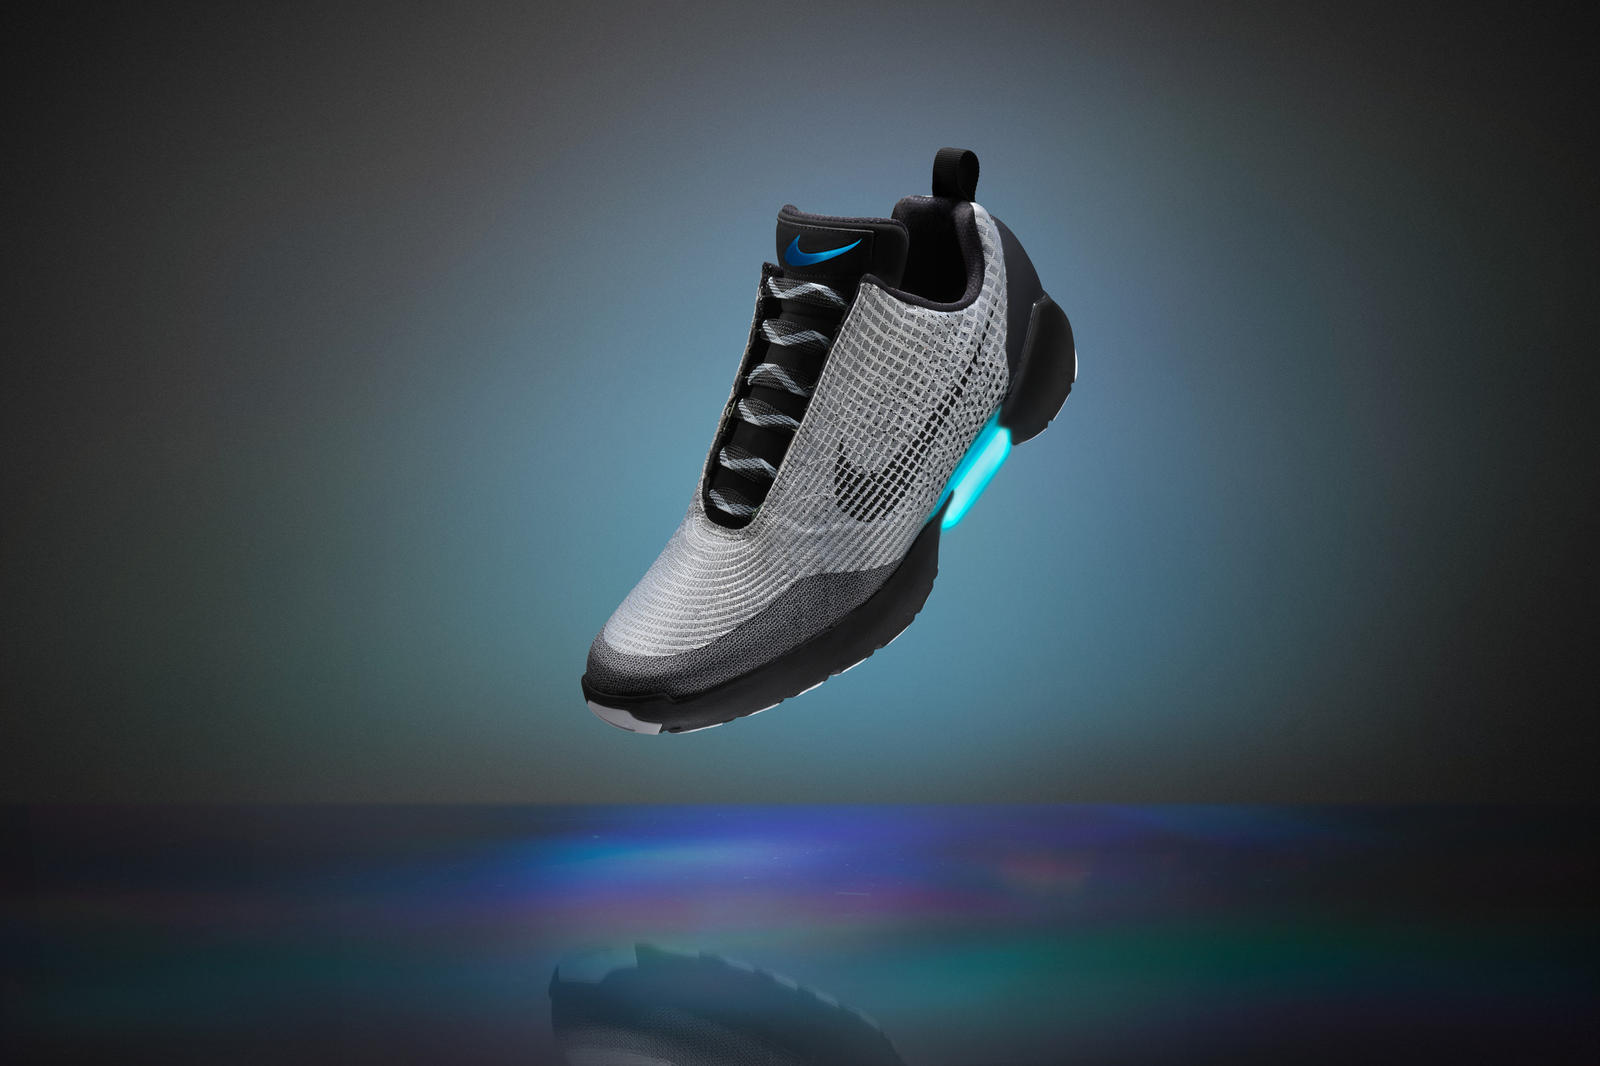 They Really Just Did Back to the Future-Style Self-Lacing Shoes